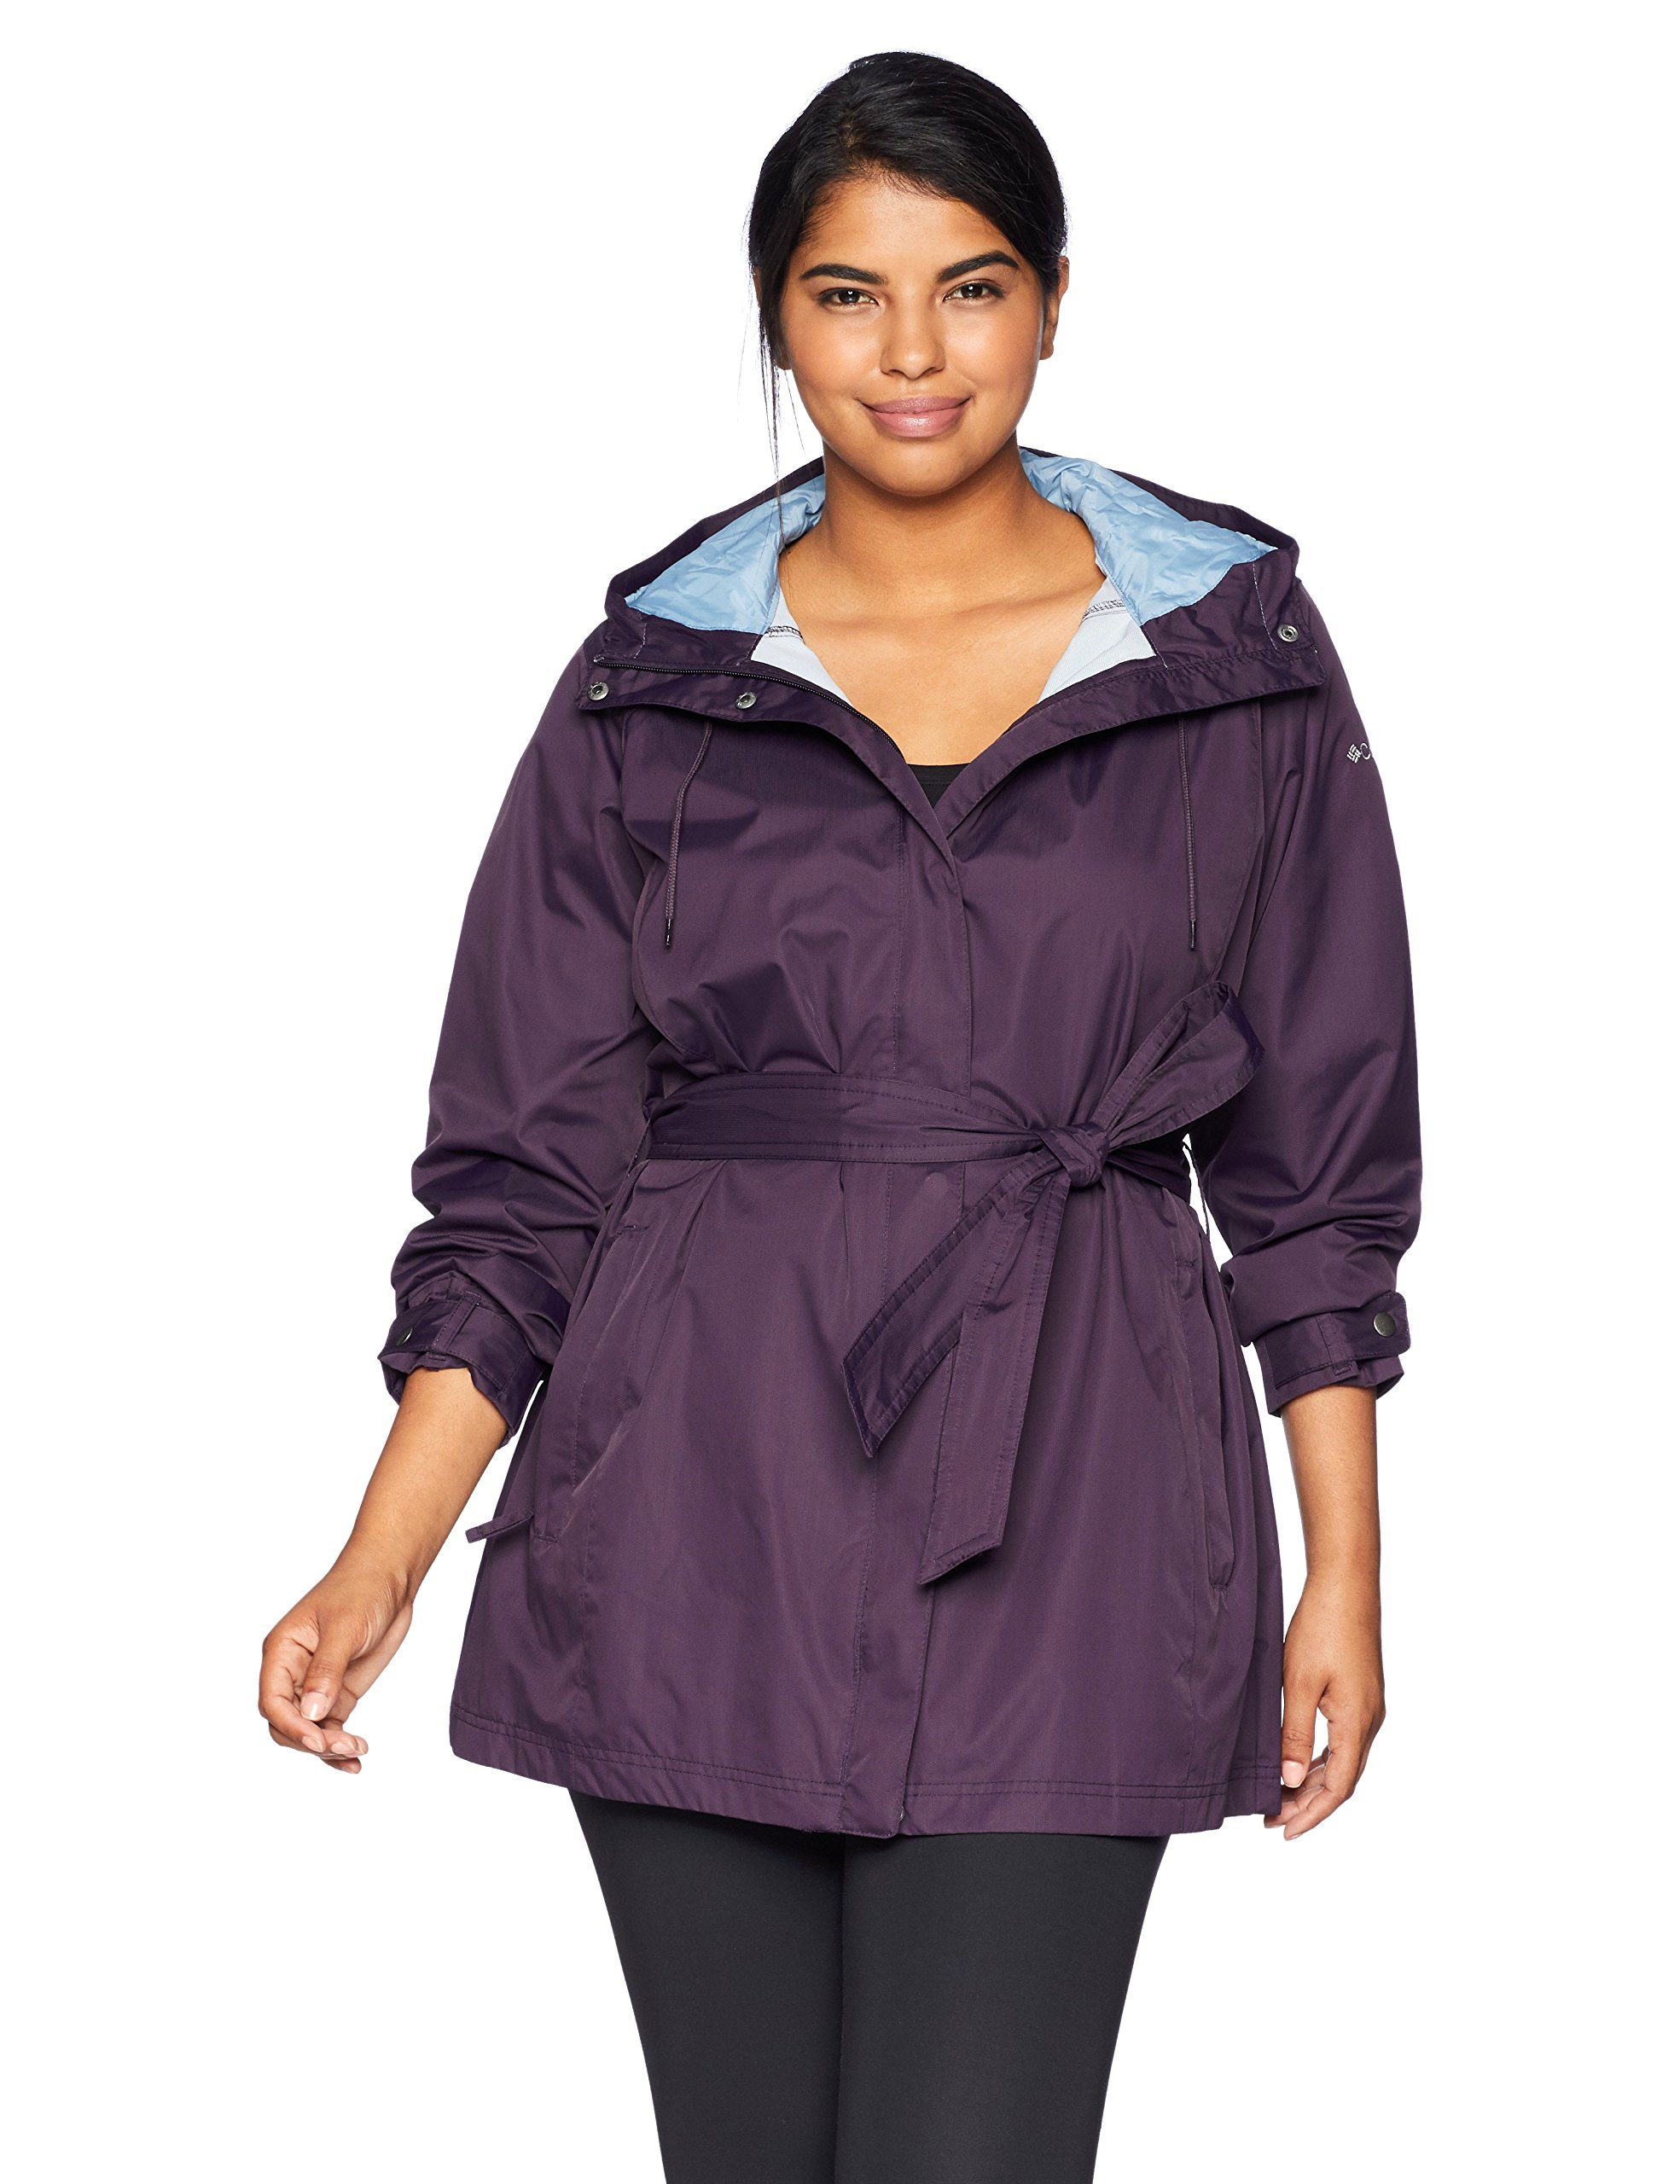 Columbia Women's Plus Size Pardon My Trench Rain Jacket, Dark Plum, 2X